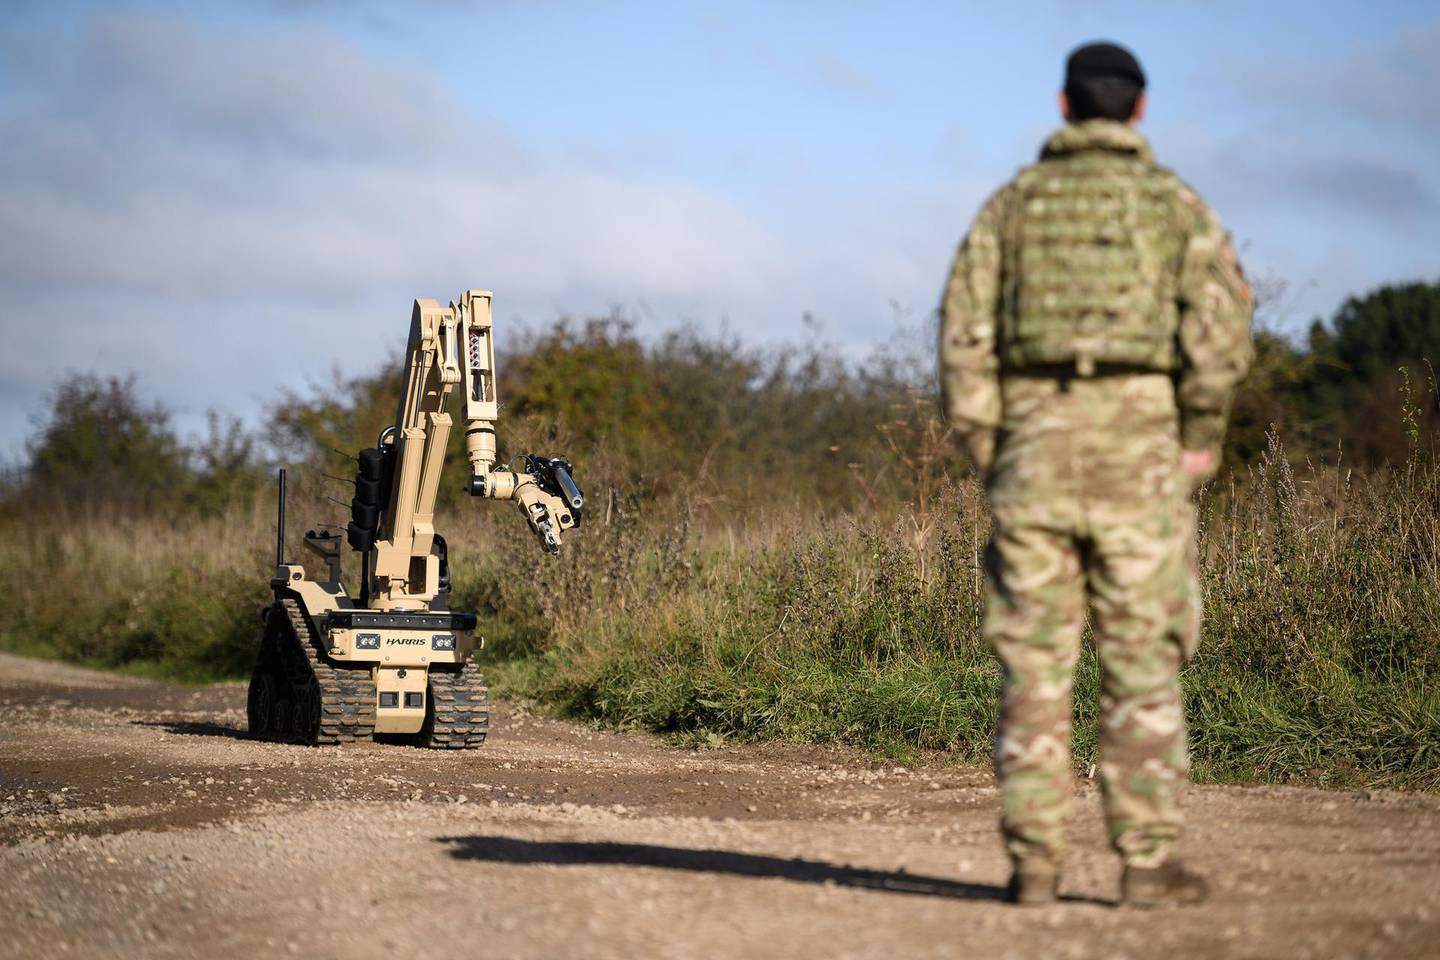 SALISBURY, ENGLAND - OCTOBER 15: A member of the Explosive Ordnance Disposal (EOD) search team looks on as a Harris T7 multi-mission robotic system is deployed during their Mission Rehearsal Exercise ahead of deployment to Mali, on the Ministry of Defence training area on Salisbury Plain, on October 15, 2020 in Salisbury, England. Later this year, 300 military personnel will join the UN in Mali on a peacekeeping mission and help counter instability following a coup which ousted President KevØta in August. The United Nations Multidimensional Integrated Stabilization Mission in Mali (MINUSMA) was formed in response to the seizing of territory by militant Islamists following a coup in 2012. The crisis in Mali has thrust 12.9 million into a precarious security situation, according to a UN estimate, with 6.8 million in need of humanitarian assistance. (Photo by Leon Neal/Getty Images)